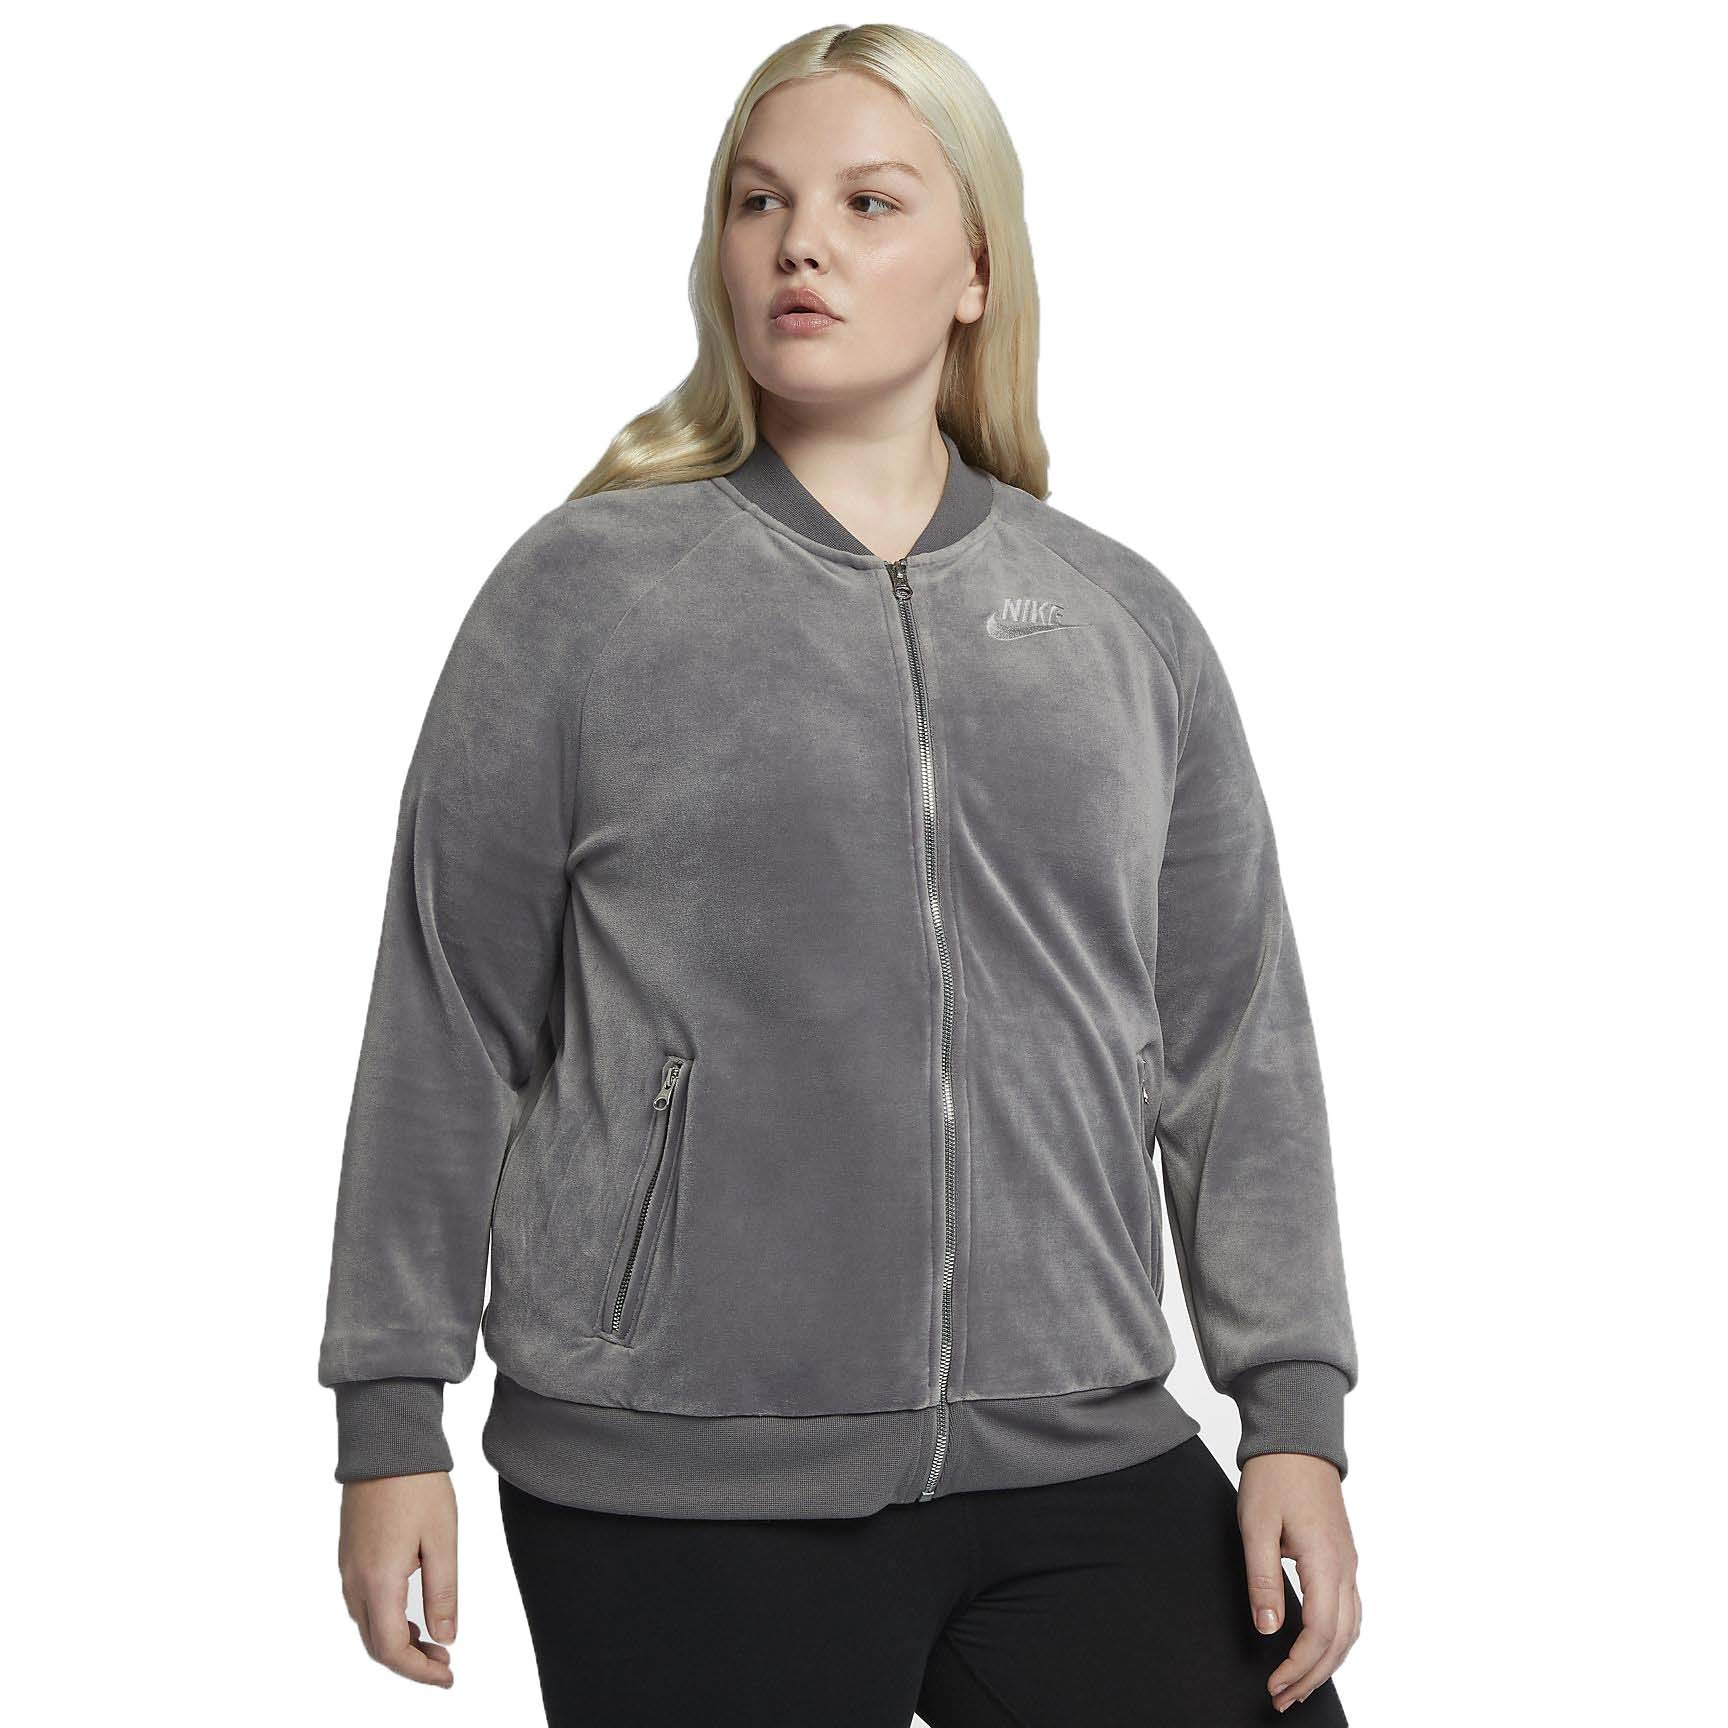 NIKE Women's Velour Track Jacket Gunsmoke Metallic Silver AH2853-036 (1X Plus) by NIKE